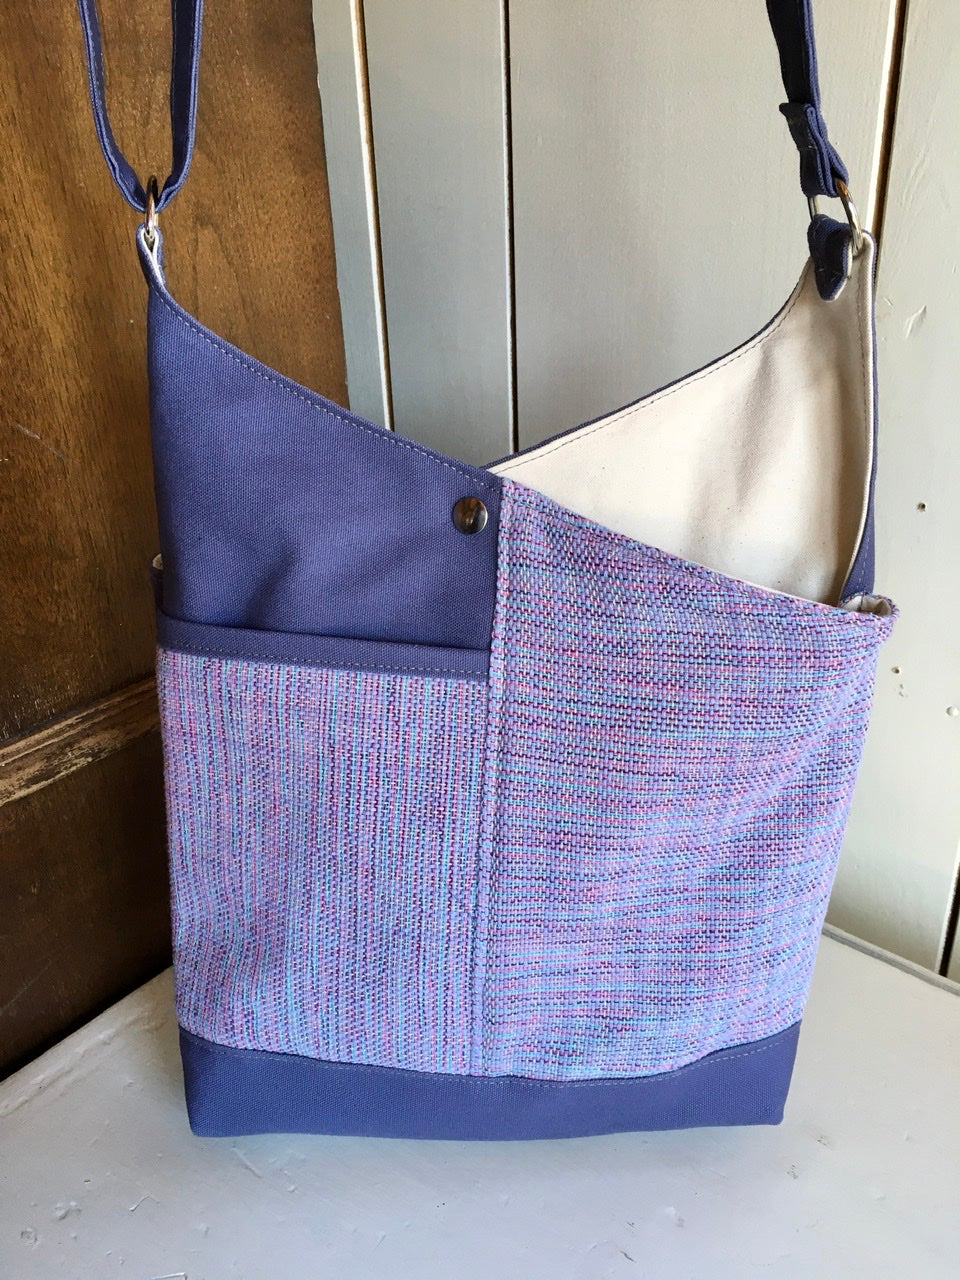 43 Bent Crossbody Snap Top - Lavender/Lavender